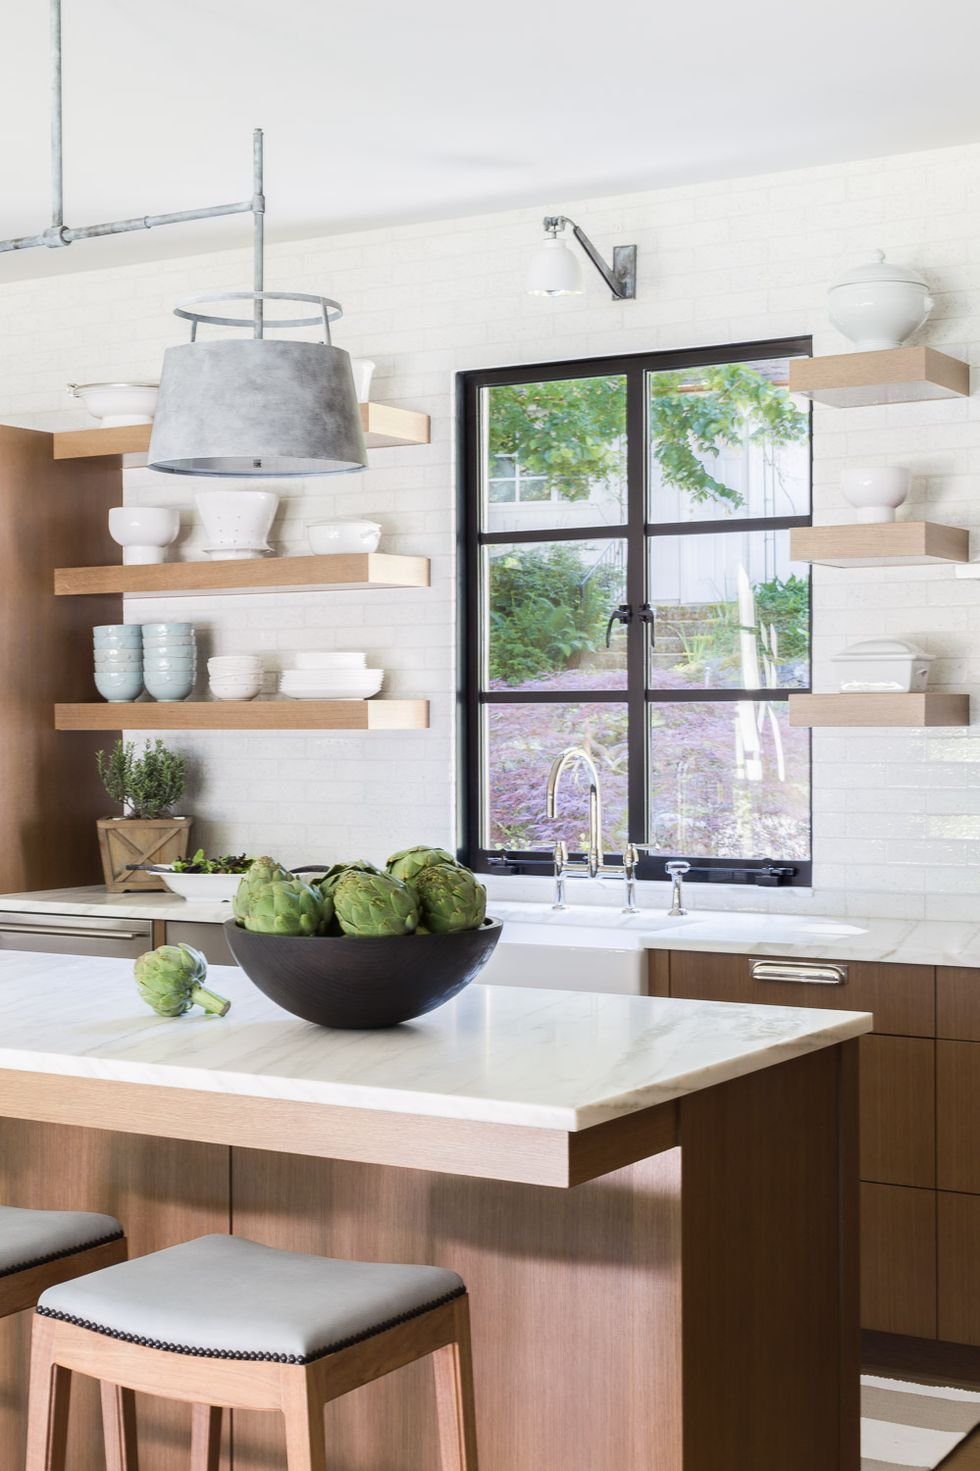 33 Subway Tile Backsplashes Stylish Subway Tile Ideas For Kitchens